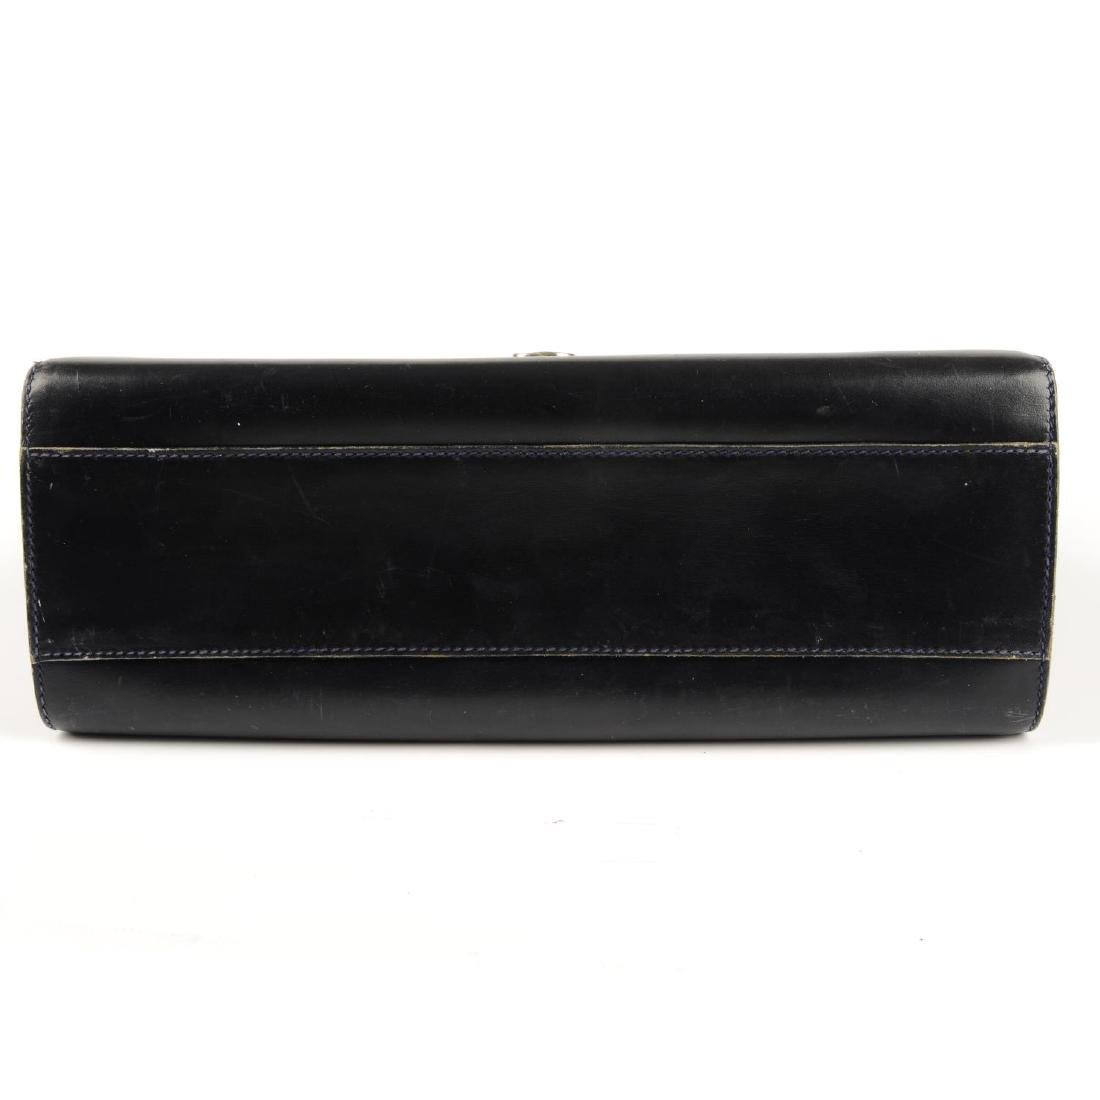 GUCCI - a vintage leather box handbag. Designed with a - 4